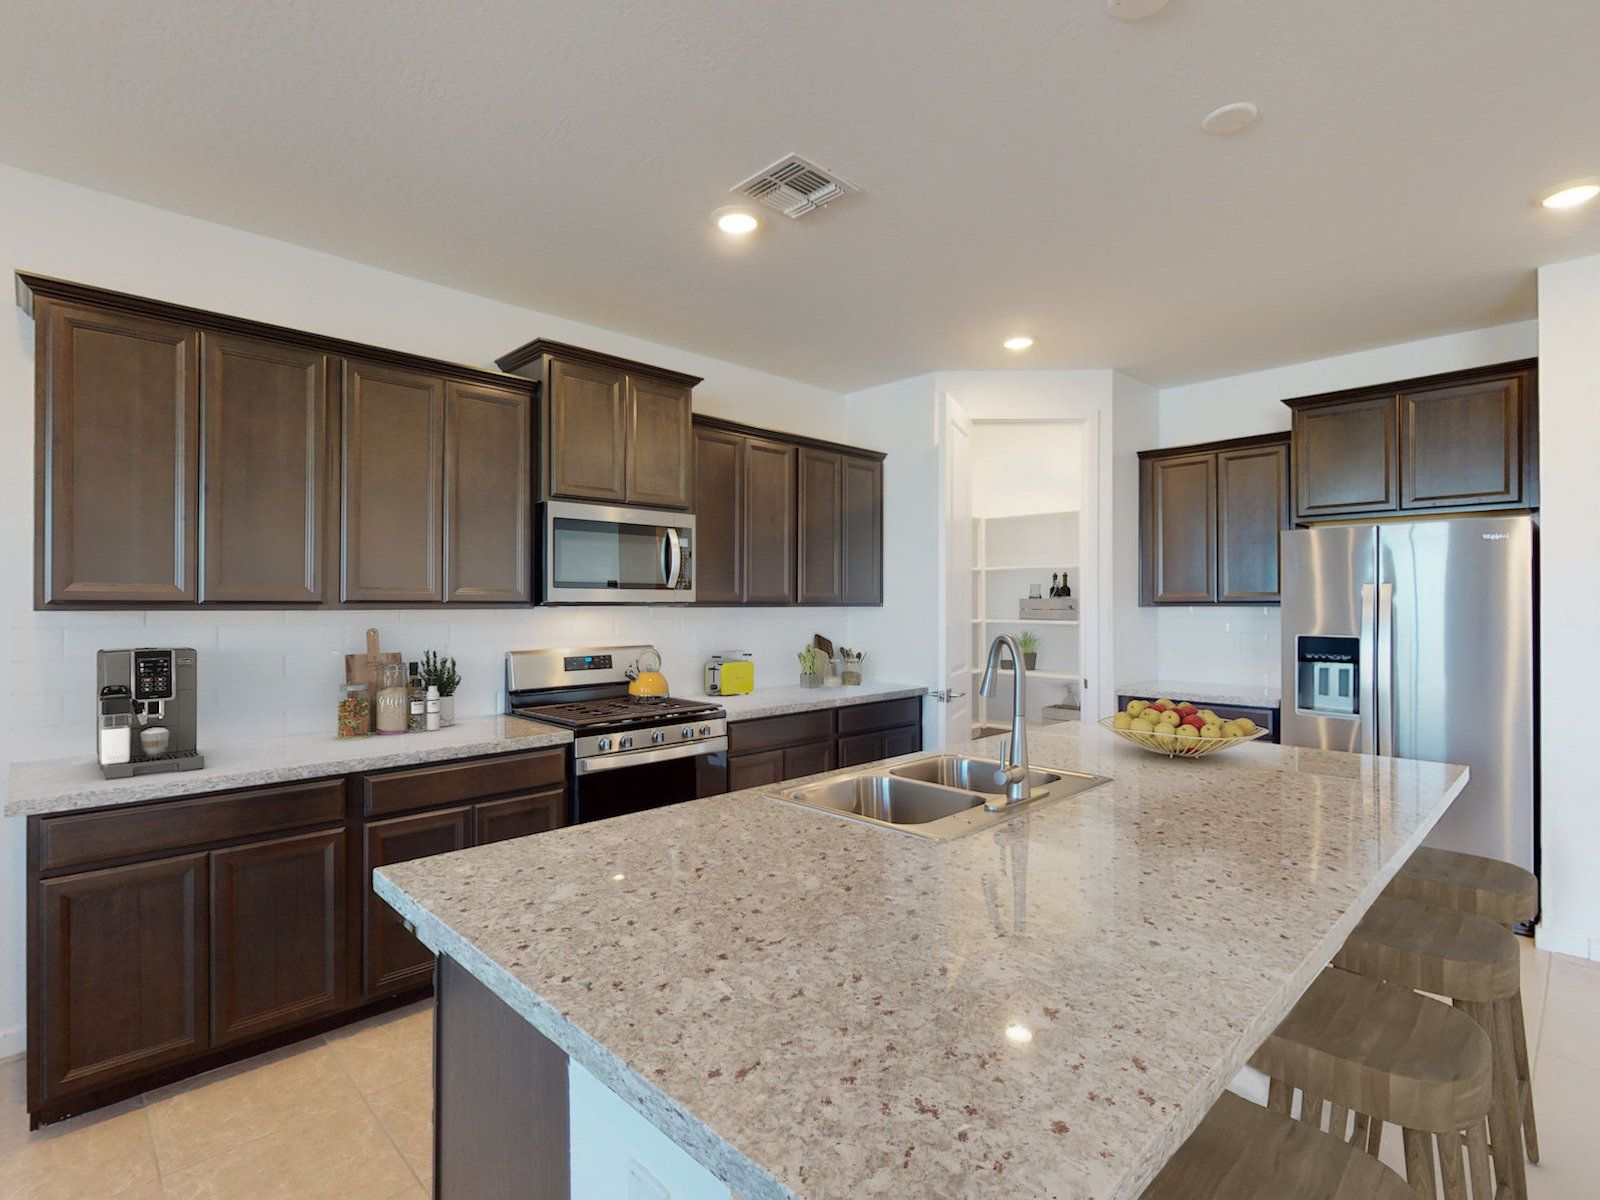 Kitchen featured in the Onyx By Meritage Homes in Phoenix-Mesa, AZ